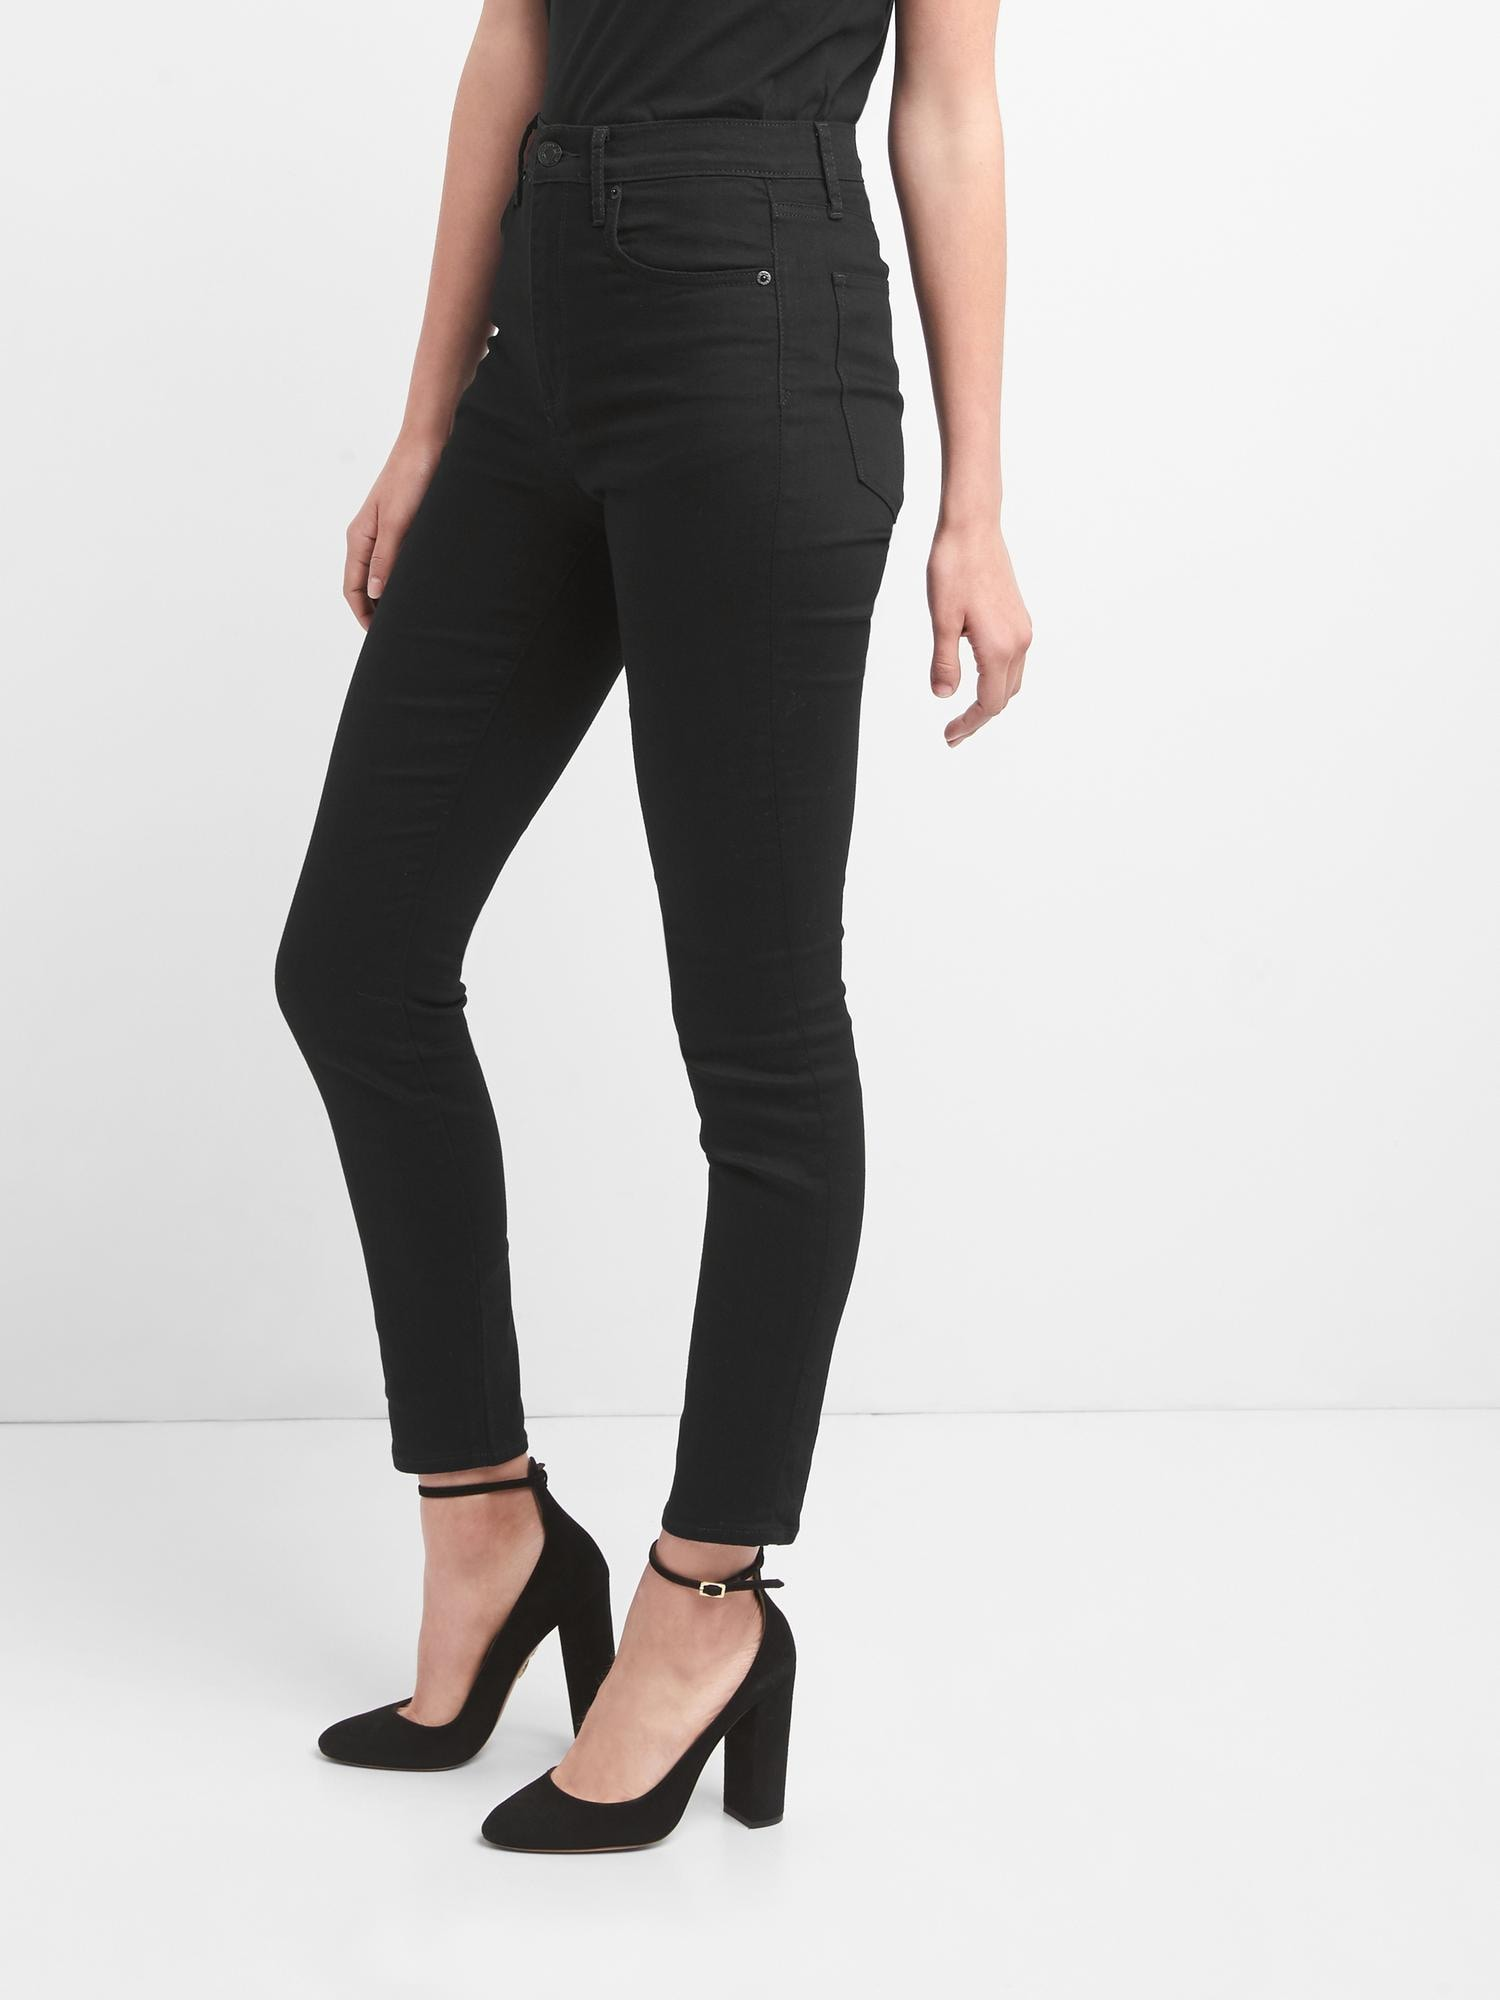 Buy Gap rise high skinny jeans pictures trends